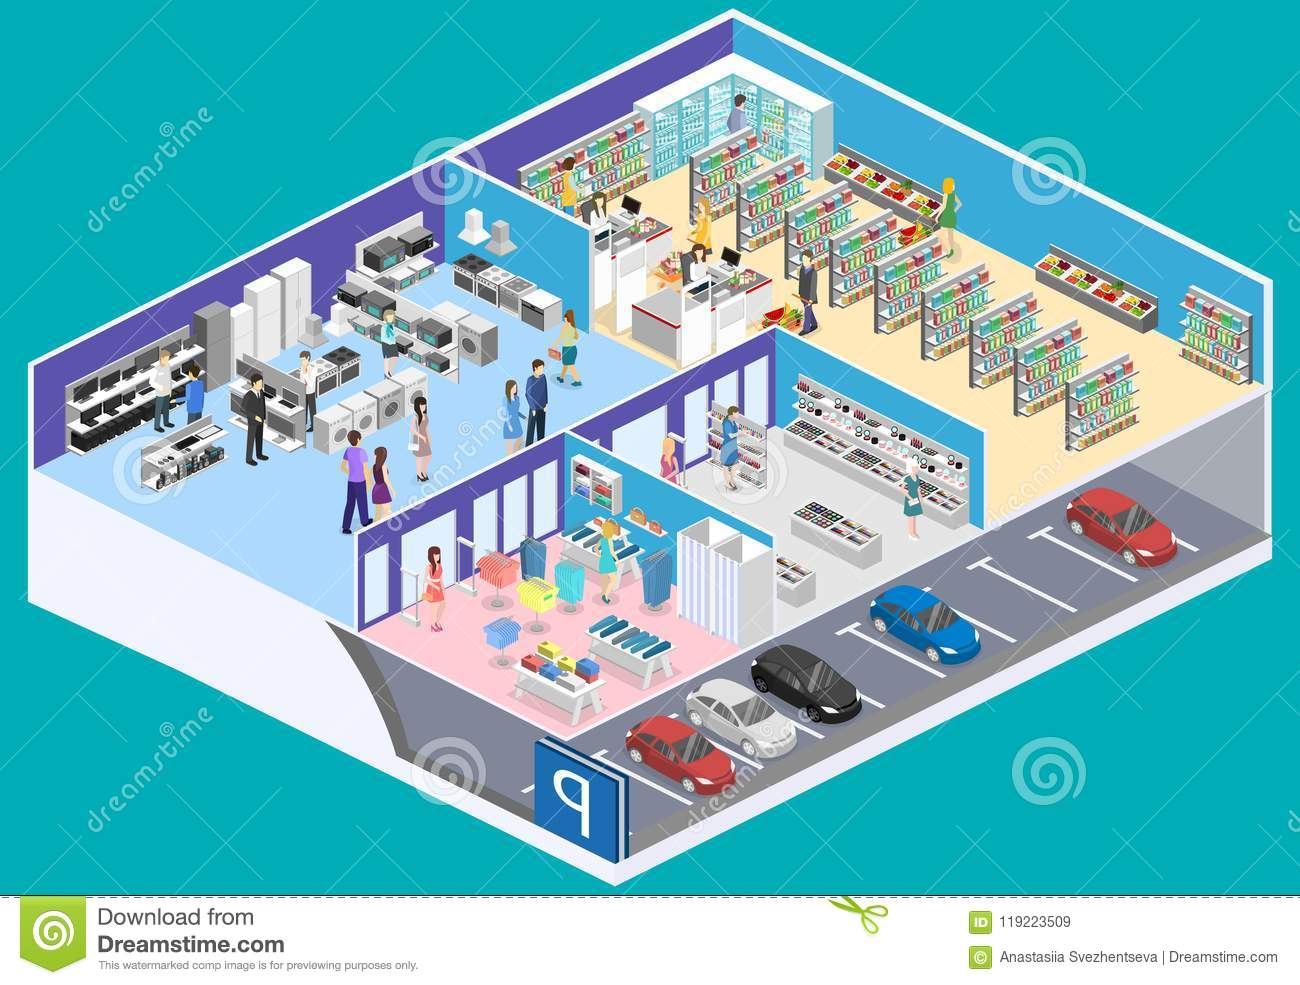 Isometric Interior Shopping Mall, Grocery, Computer, Household